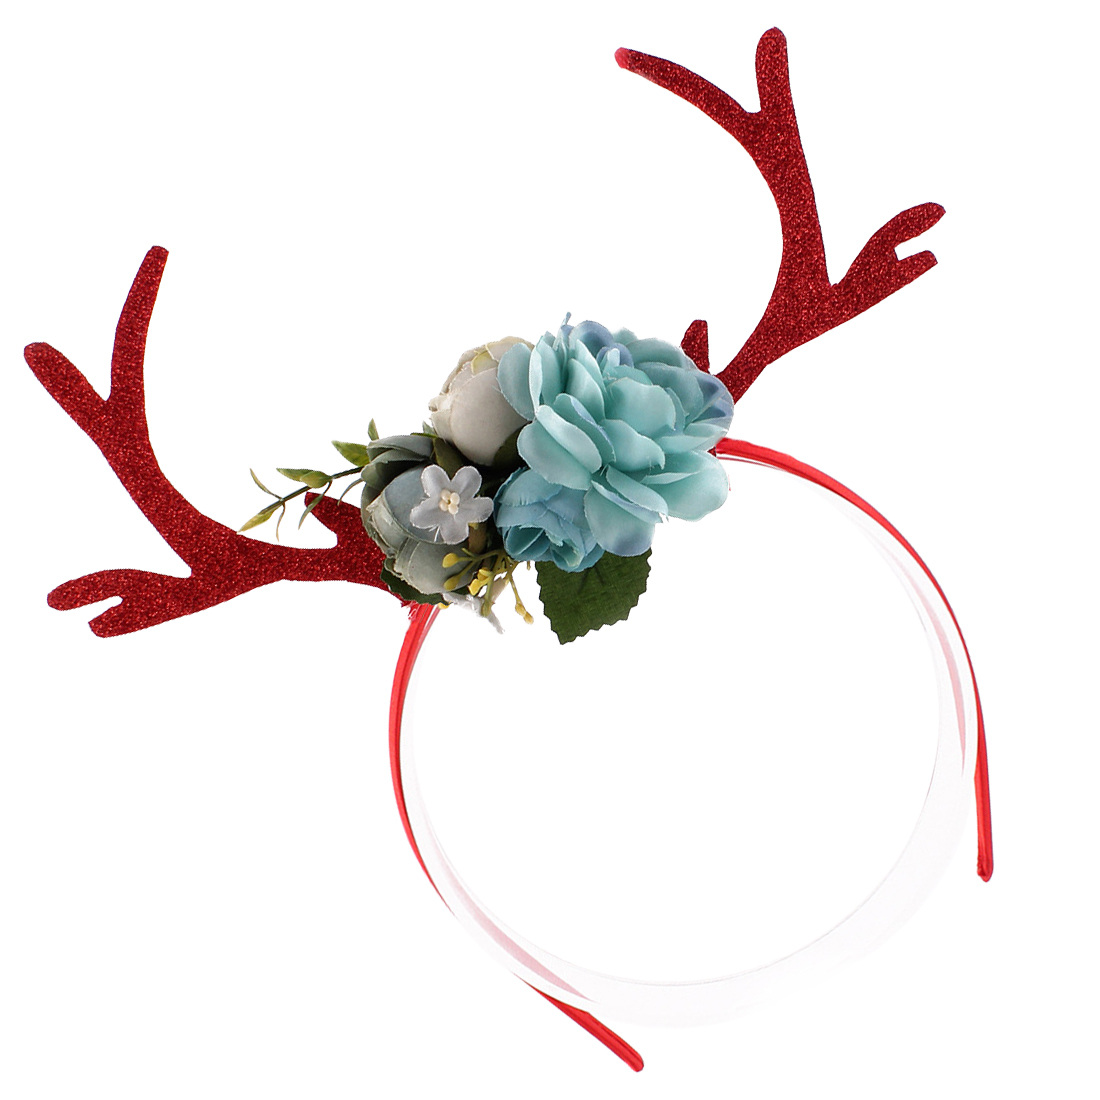 High Quality Headband Gift Women Girls Christmas Deer Antlers Costume Ear Party Hair Floral Hairband